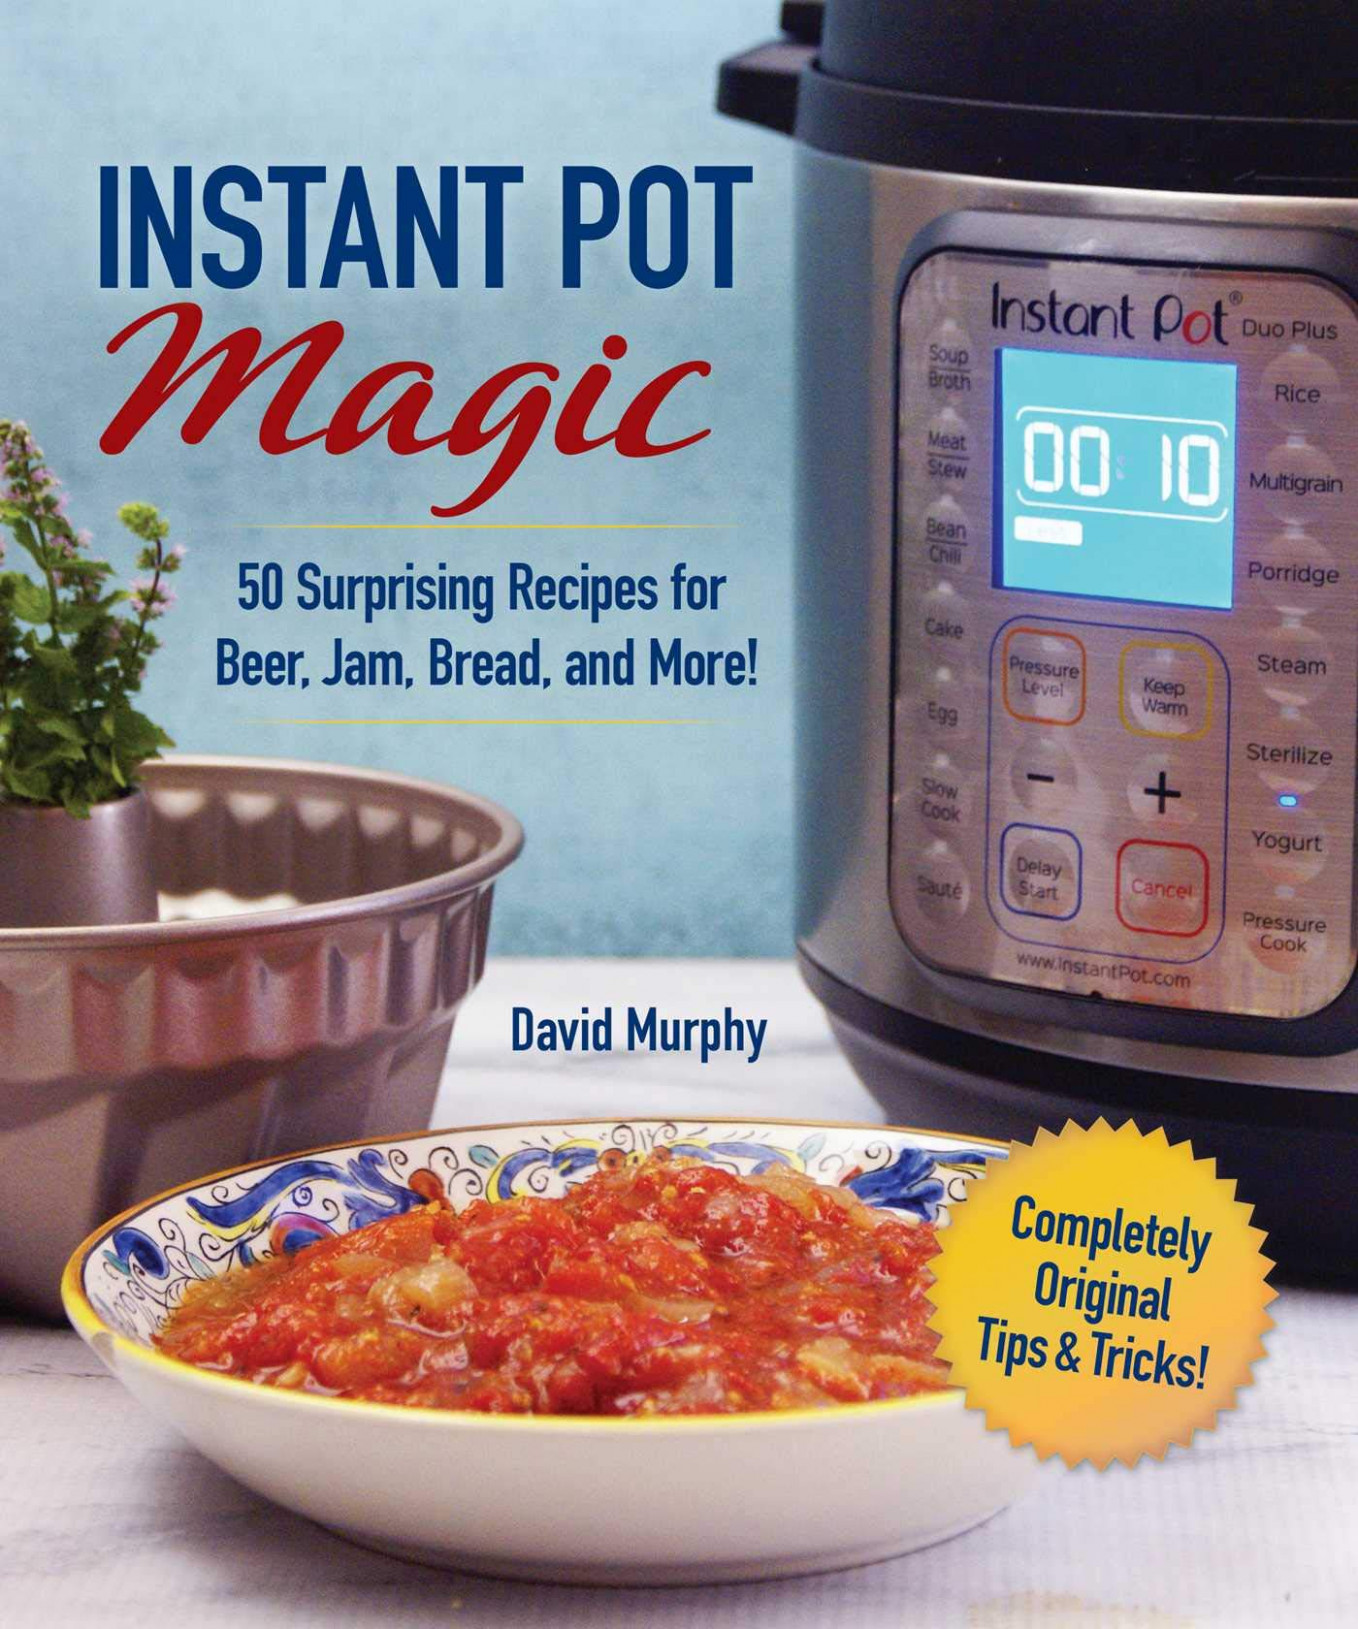 Instant Pot Magic: 14 Surprising Recipes for Beer, Jam ... - recipes today